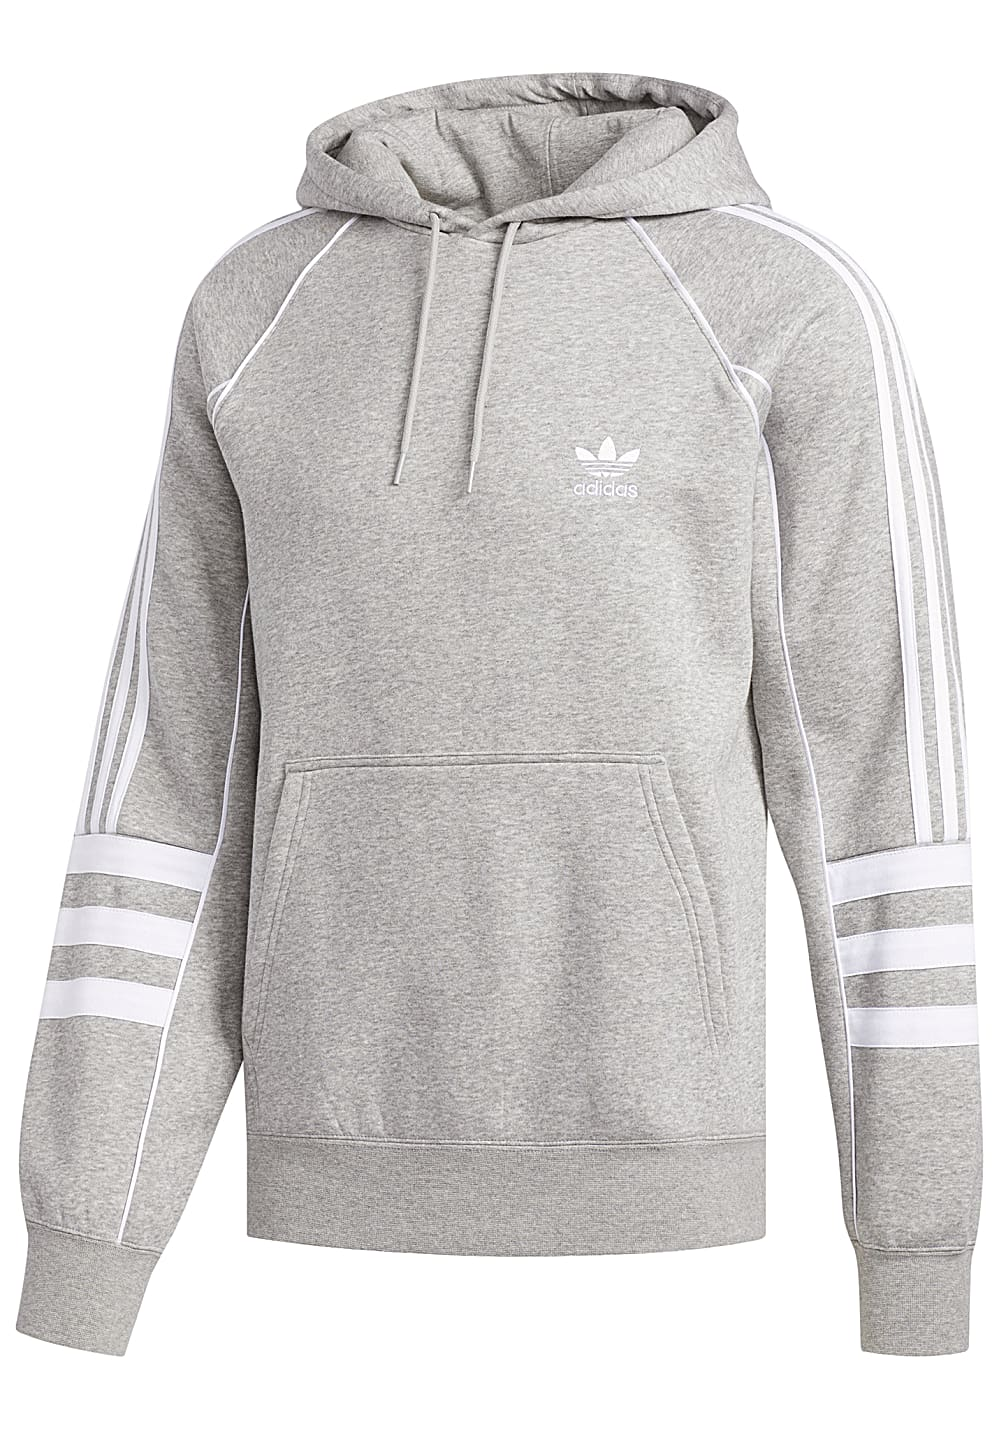 low priced cb7fb ca629 adidas Originals Auth - Kapuzenpullover für Herren - Grau